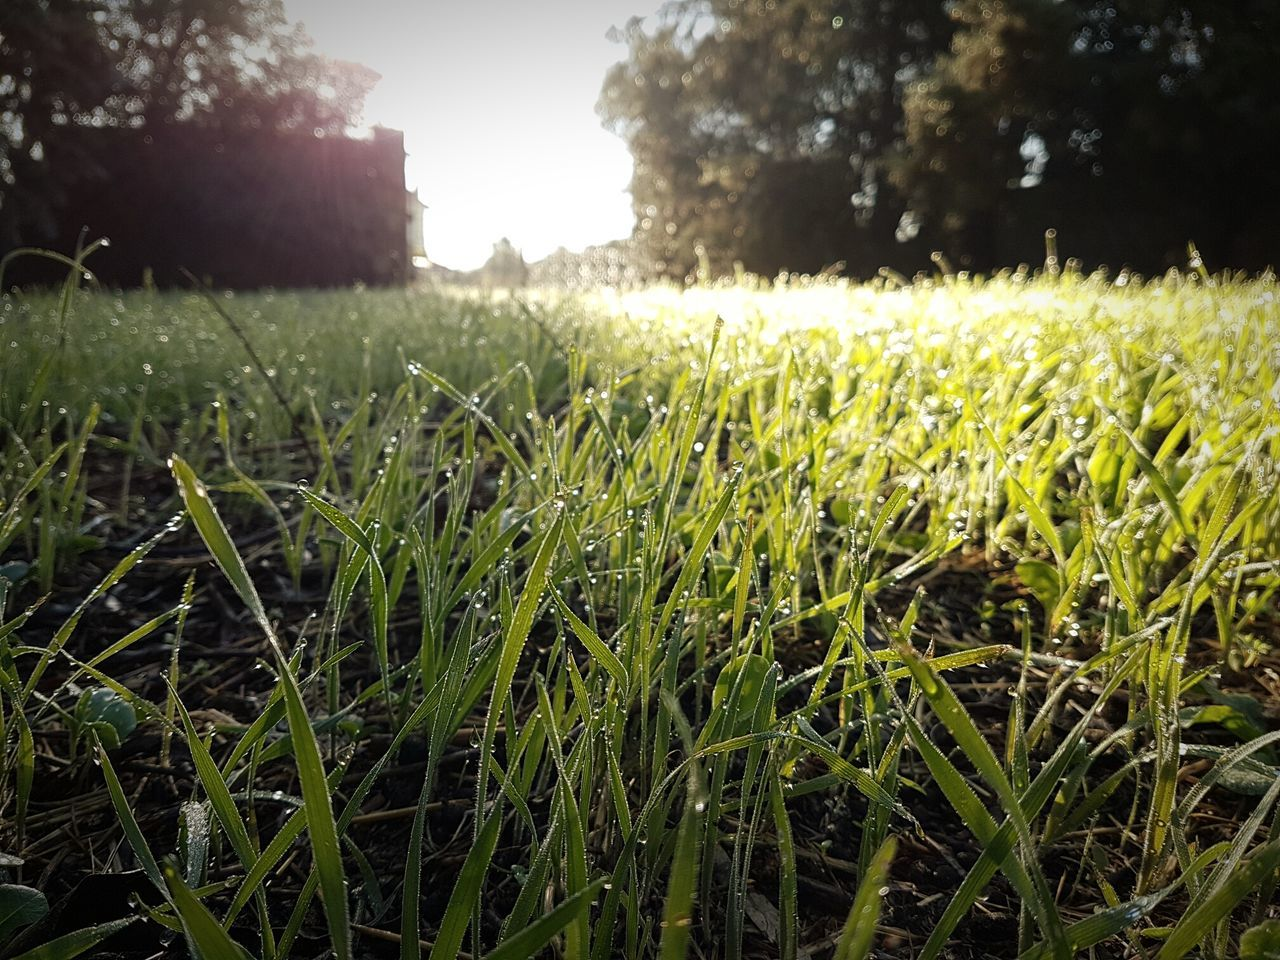 grass, field, growth, nature, outdoors, day, no people, tranquility, green color, focus on foreground, agriculture, beauty in nature, plant, sunlight, close-up, landscape, freshness, sky